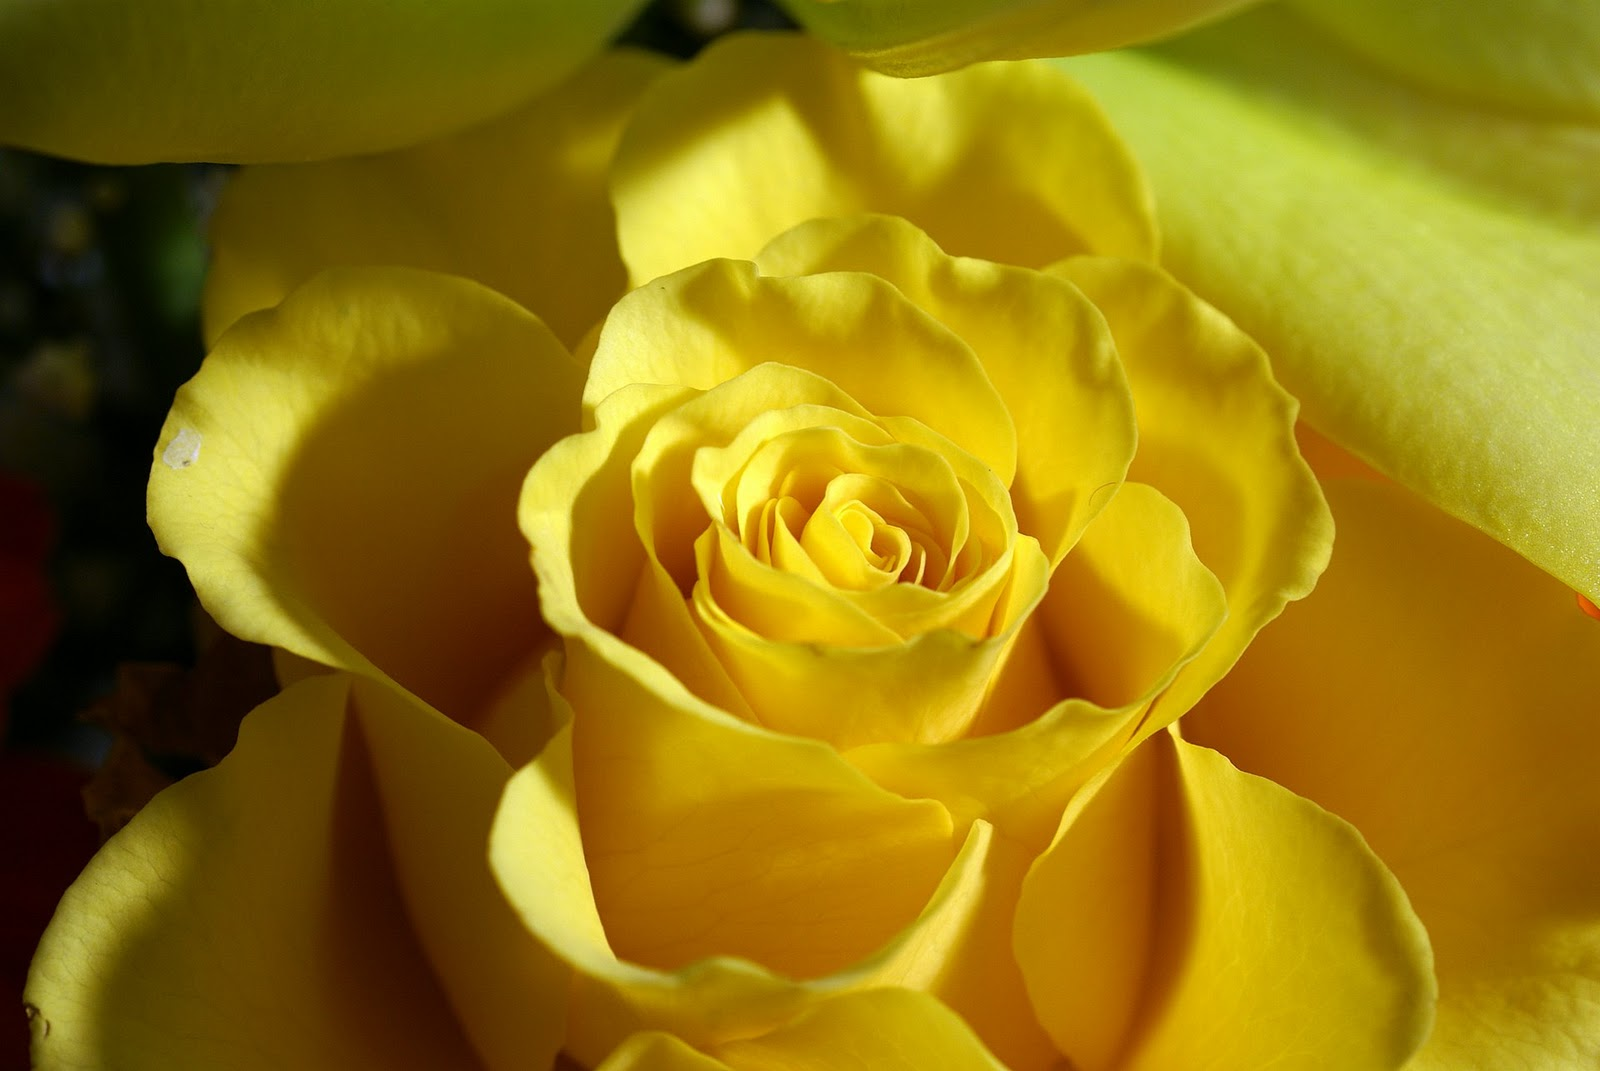 Timeline - Hd Images Of Yellow Flowers , HD Wallpaper & Backgrounds